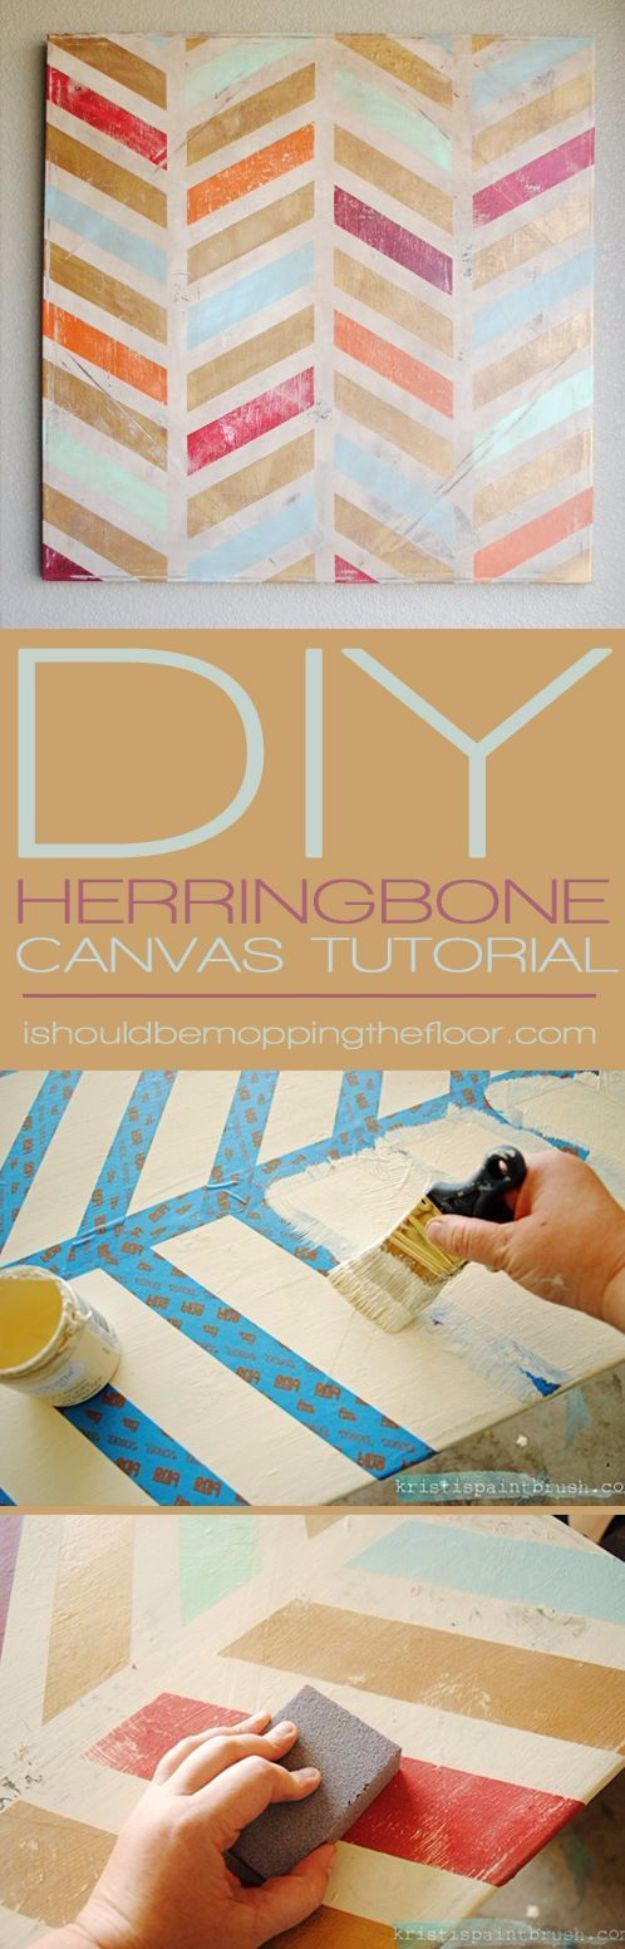 DIY Wall Art Ideas and Do It Yourself Wall Decor for Living Room, Bedroom, Bathroom, Teen Rooms     DIY Herringbone Canvas Art     Cheap Ideas for Those On A Budget. Paint Awesome Hanging Pictures With These Easy Step By Step Tutorials and Projects     http://diyjoy.com/diy-wall-art-decor-ideas